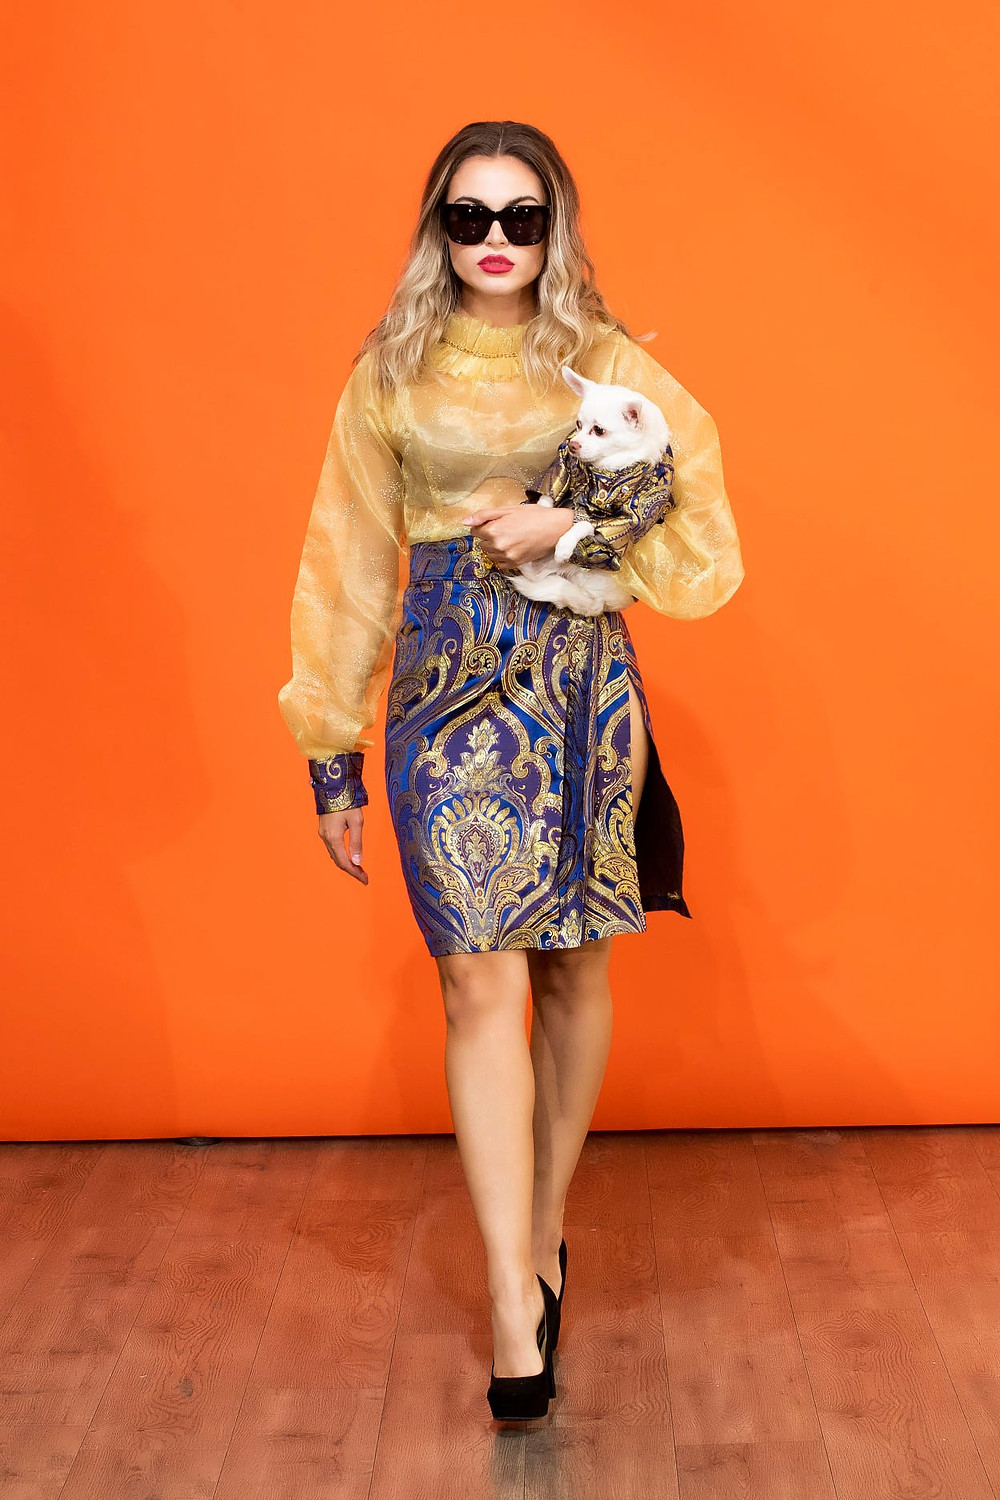 From Thursday's Dog On The Catwalk event presented by Guide Dog Foundation of Anthony Rubio's Women's Wear and Canine Couture runway show. If you missed the premiere, you may watch it here: https://youtu.be/SWnpV2bbi_E?t=899 To donate, visit: DogCouture.GuideDog.org Model:  Natalie Zarra Canine Model: Kimba  Photo by Yoni Levy at Tals Studio